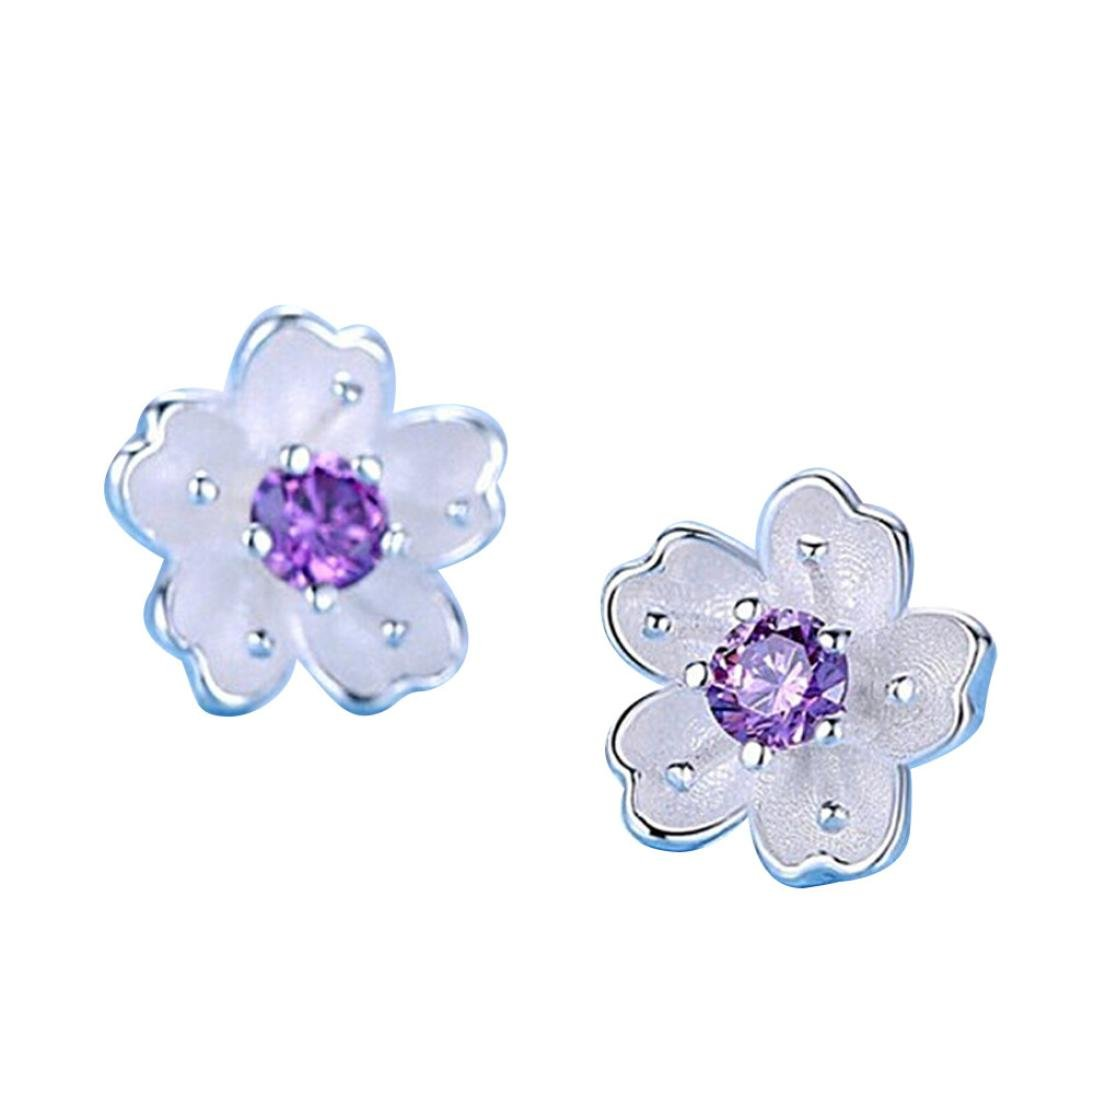 Clearance Lethez 1PC Women Sakura Floral Stud Earrings Simple Flower Ornament Jewellery for Girl